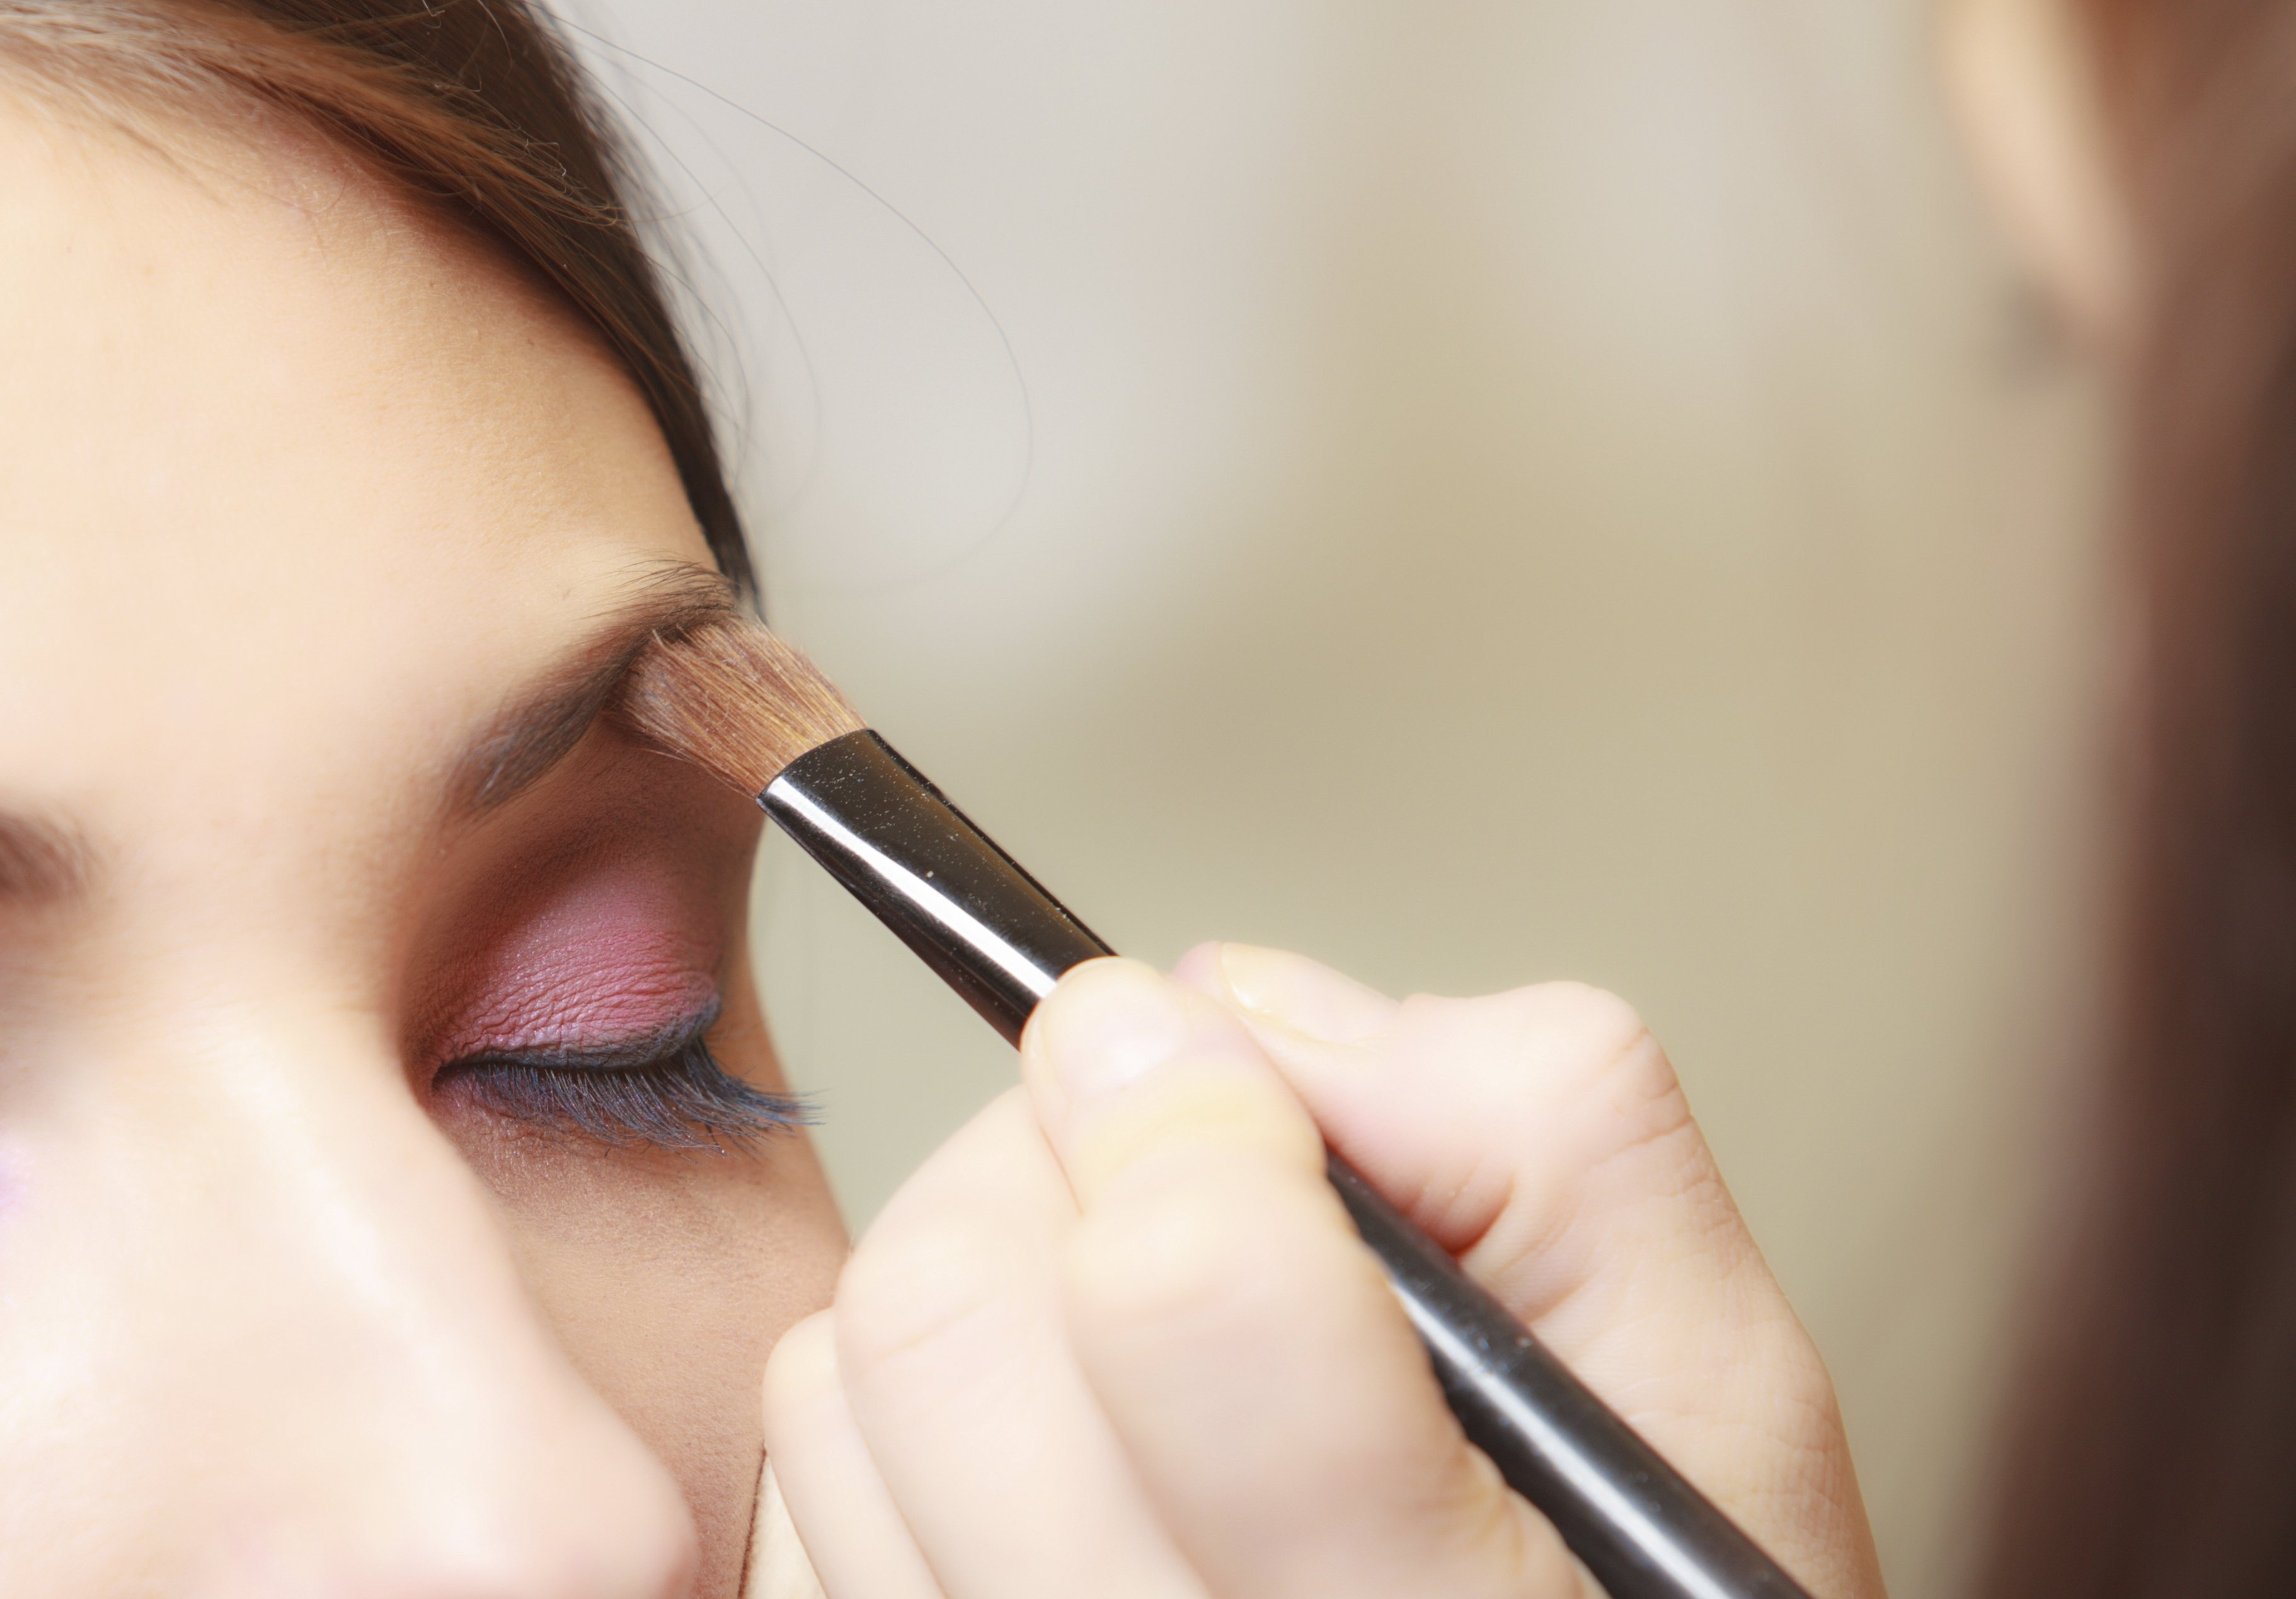 instructions on eyelash application & eyebrow tinting